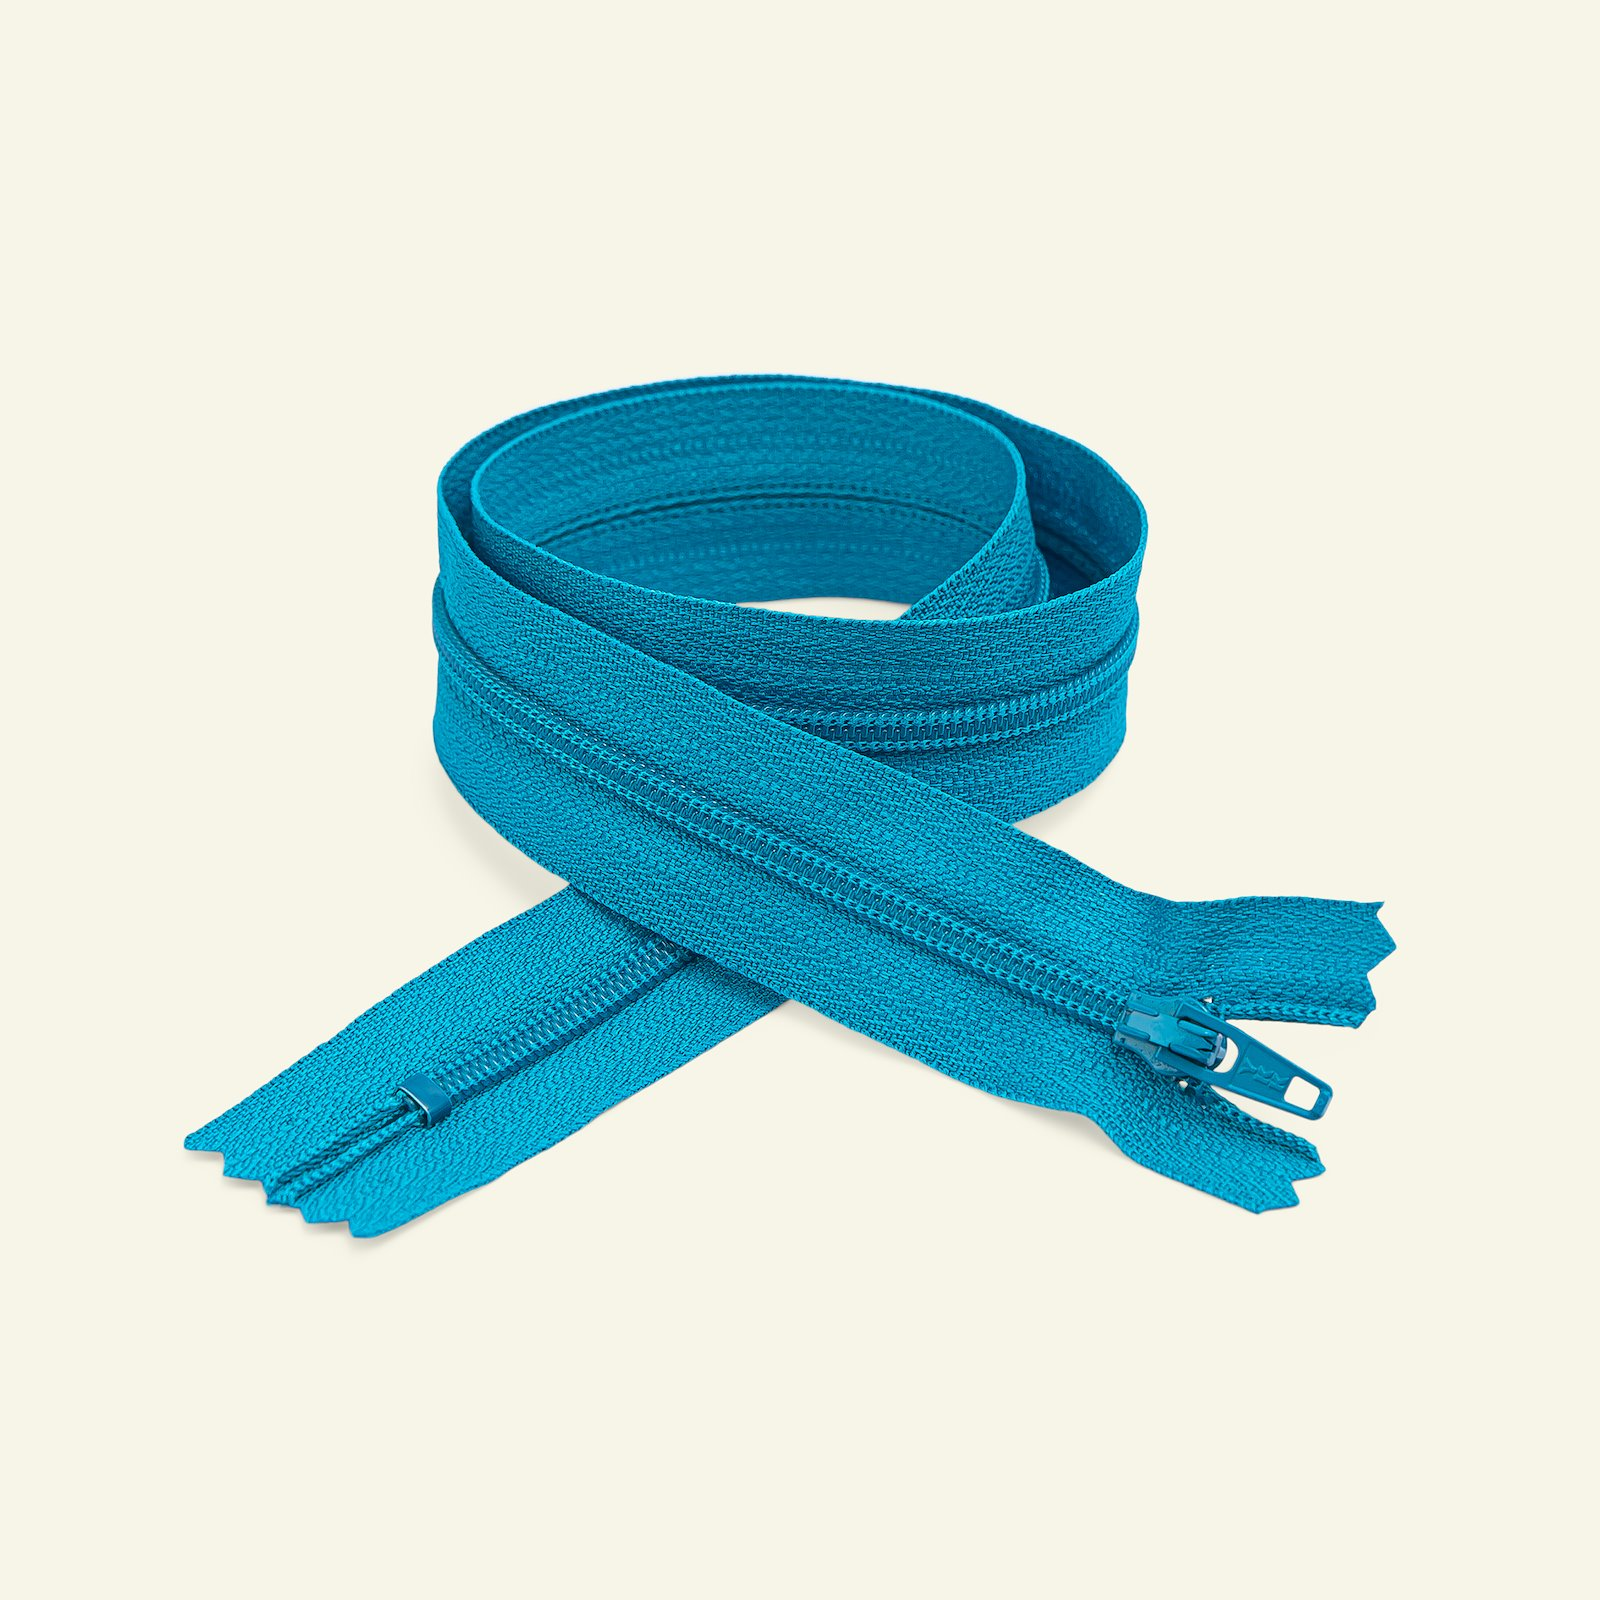 YKK zip 4mm closed end 25cm turquois x40524_pack